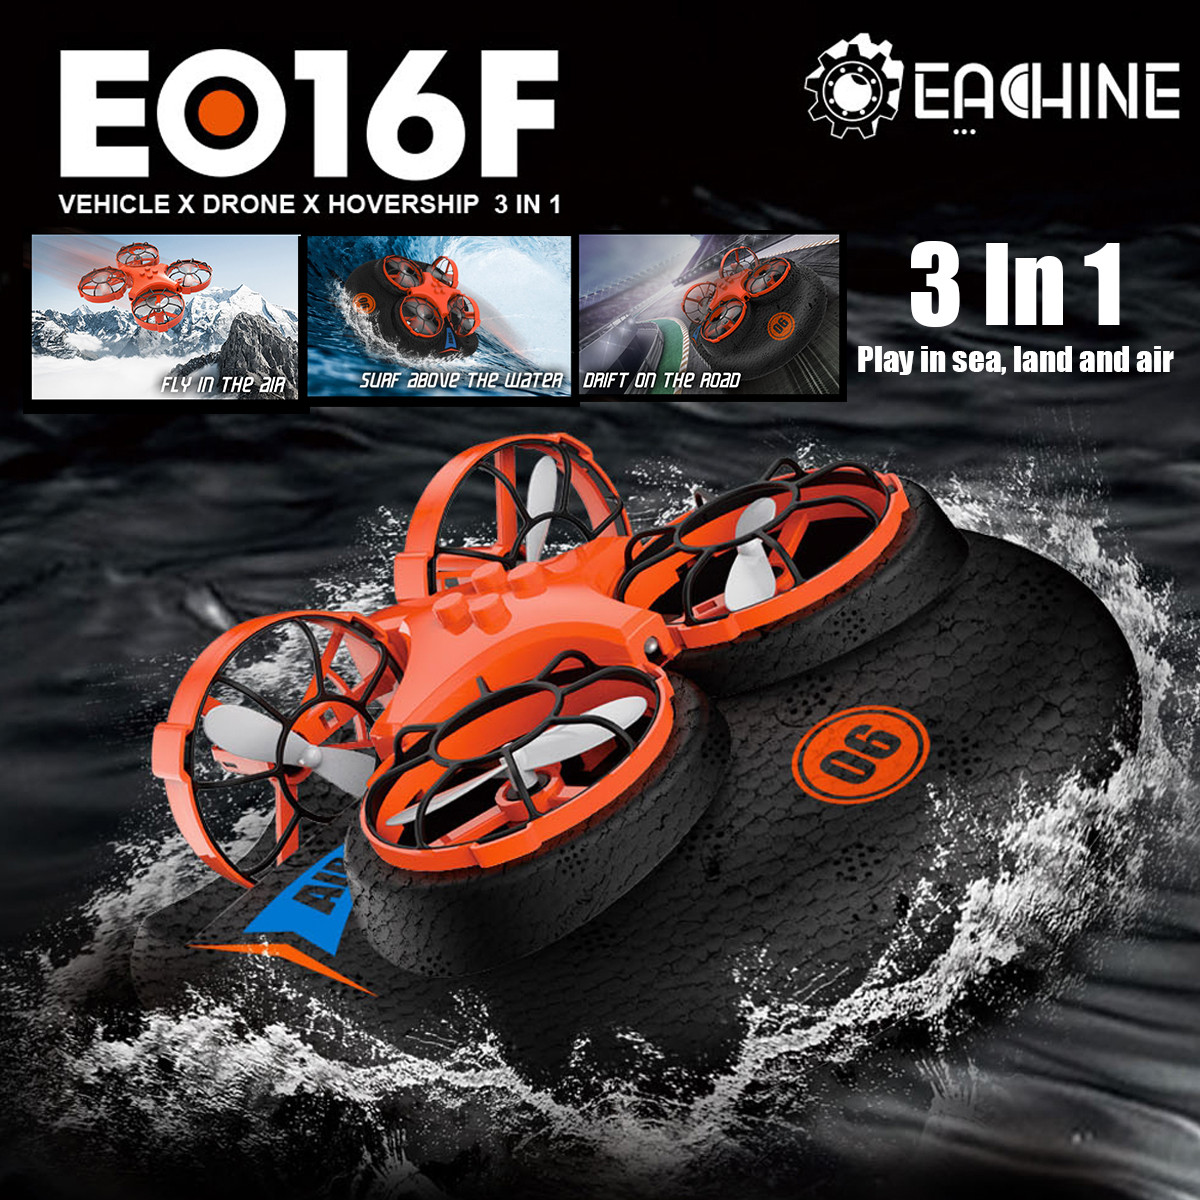 Eachine E016F 3 in 1 EPP Flying Air Boat Land Driving Mode Detachable One Key Return RC Quadcopter RTF|RC Helicopters|   - AliExpress